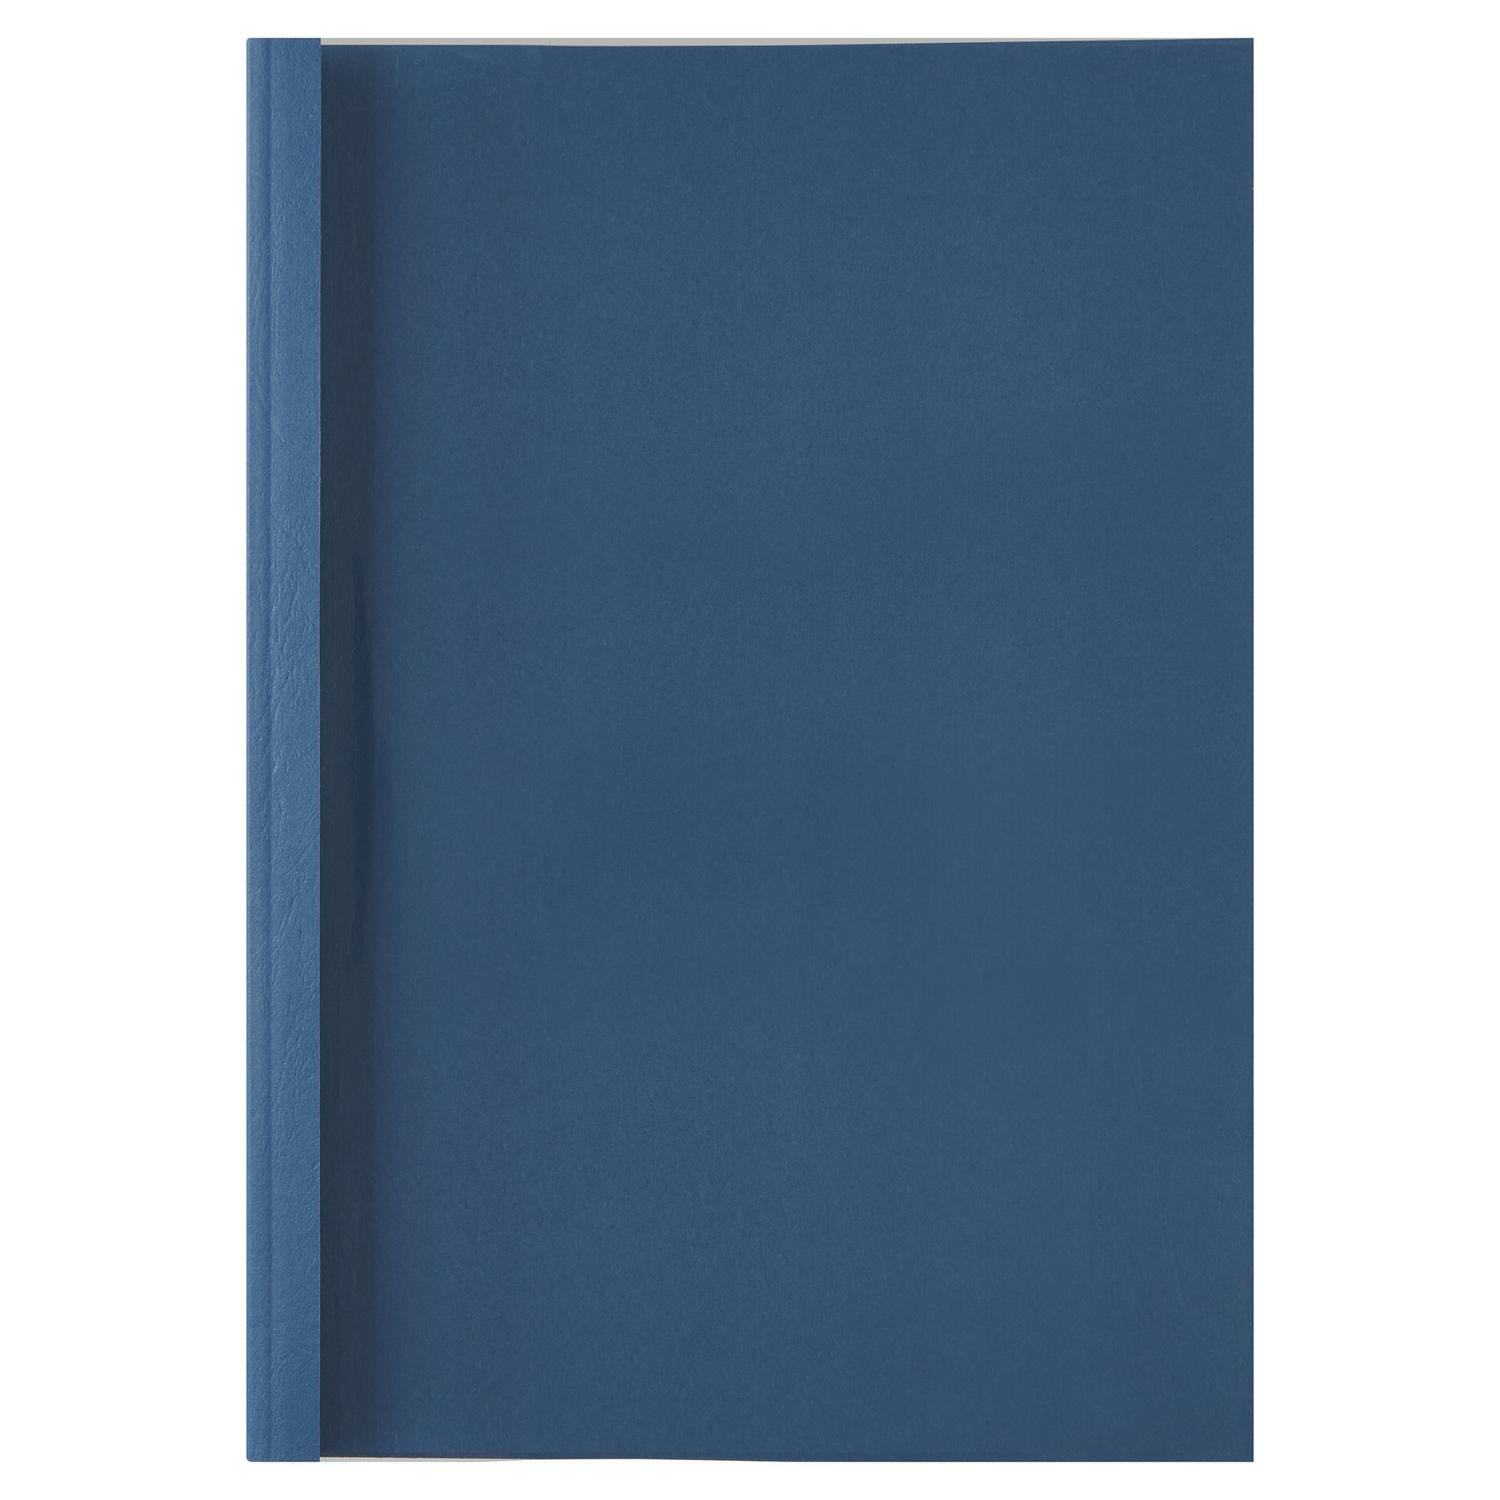 Thermal Bind Covers GBC A4 Thermal Binding Covers 4mm Royal Blue PK100